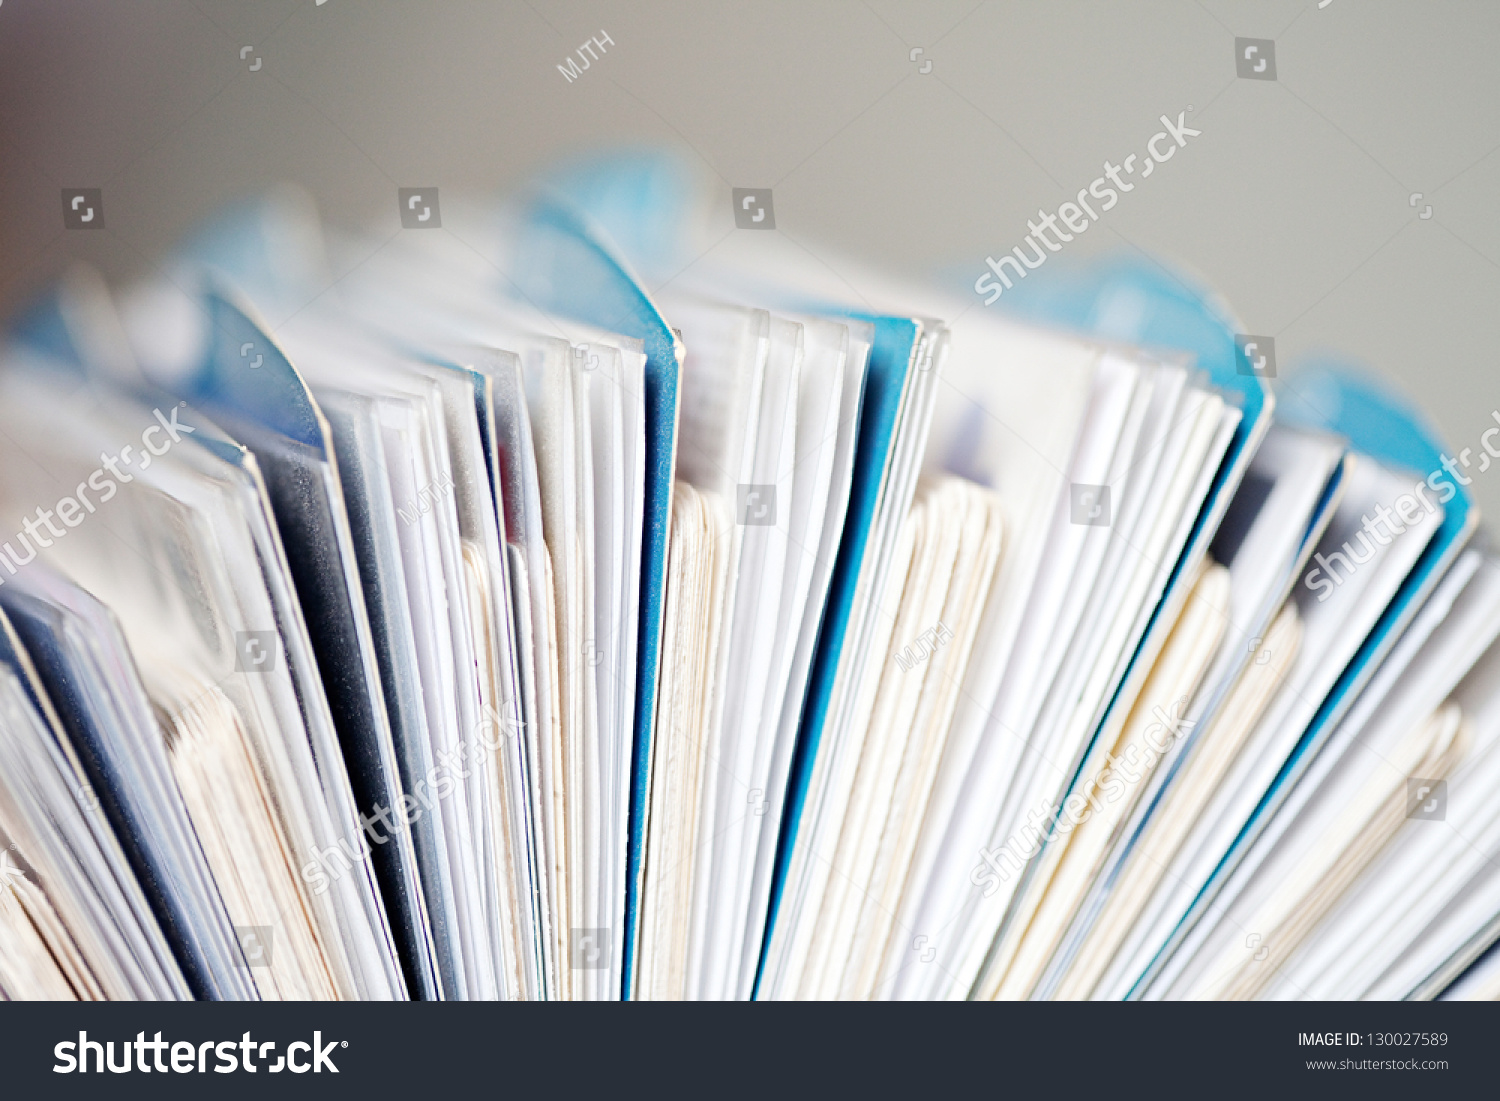 Side close detail view business card stock photo royalty free side close up detail view of a business card holder full of business cards with paper colourmoves